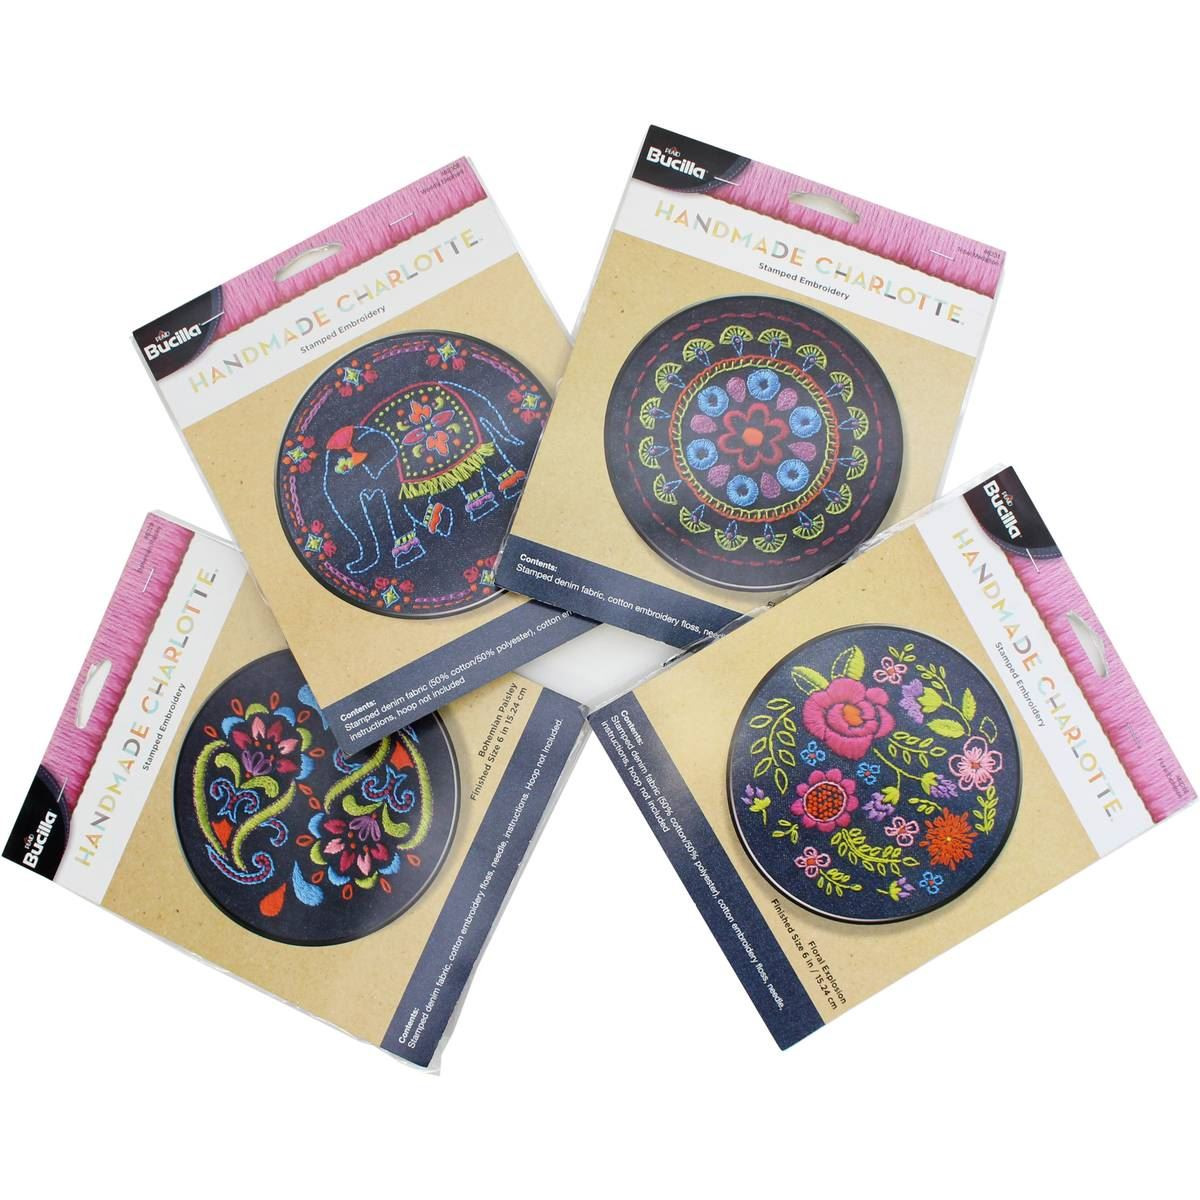 Beautiful Handmade Charlotte assorted Stamped Denim Embroidery Kit Hand Embroidery Kits Of Delightful 45 Photos Hand Embroidery Kits